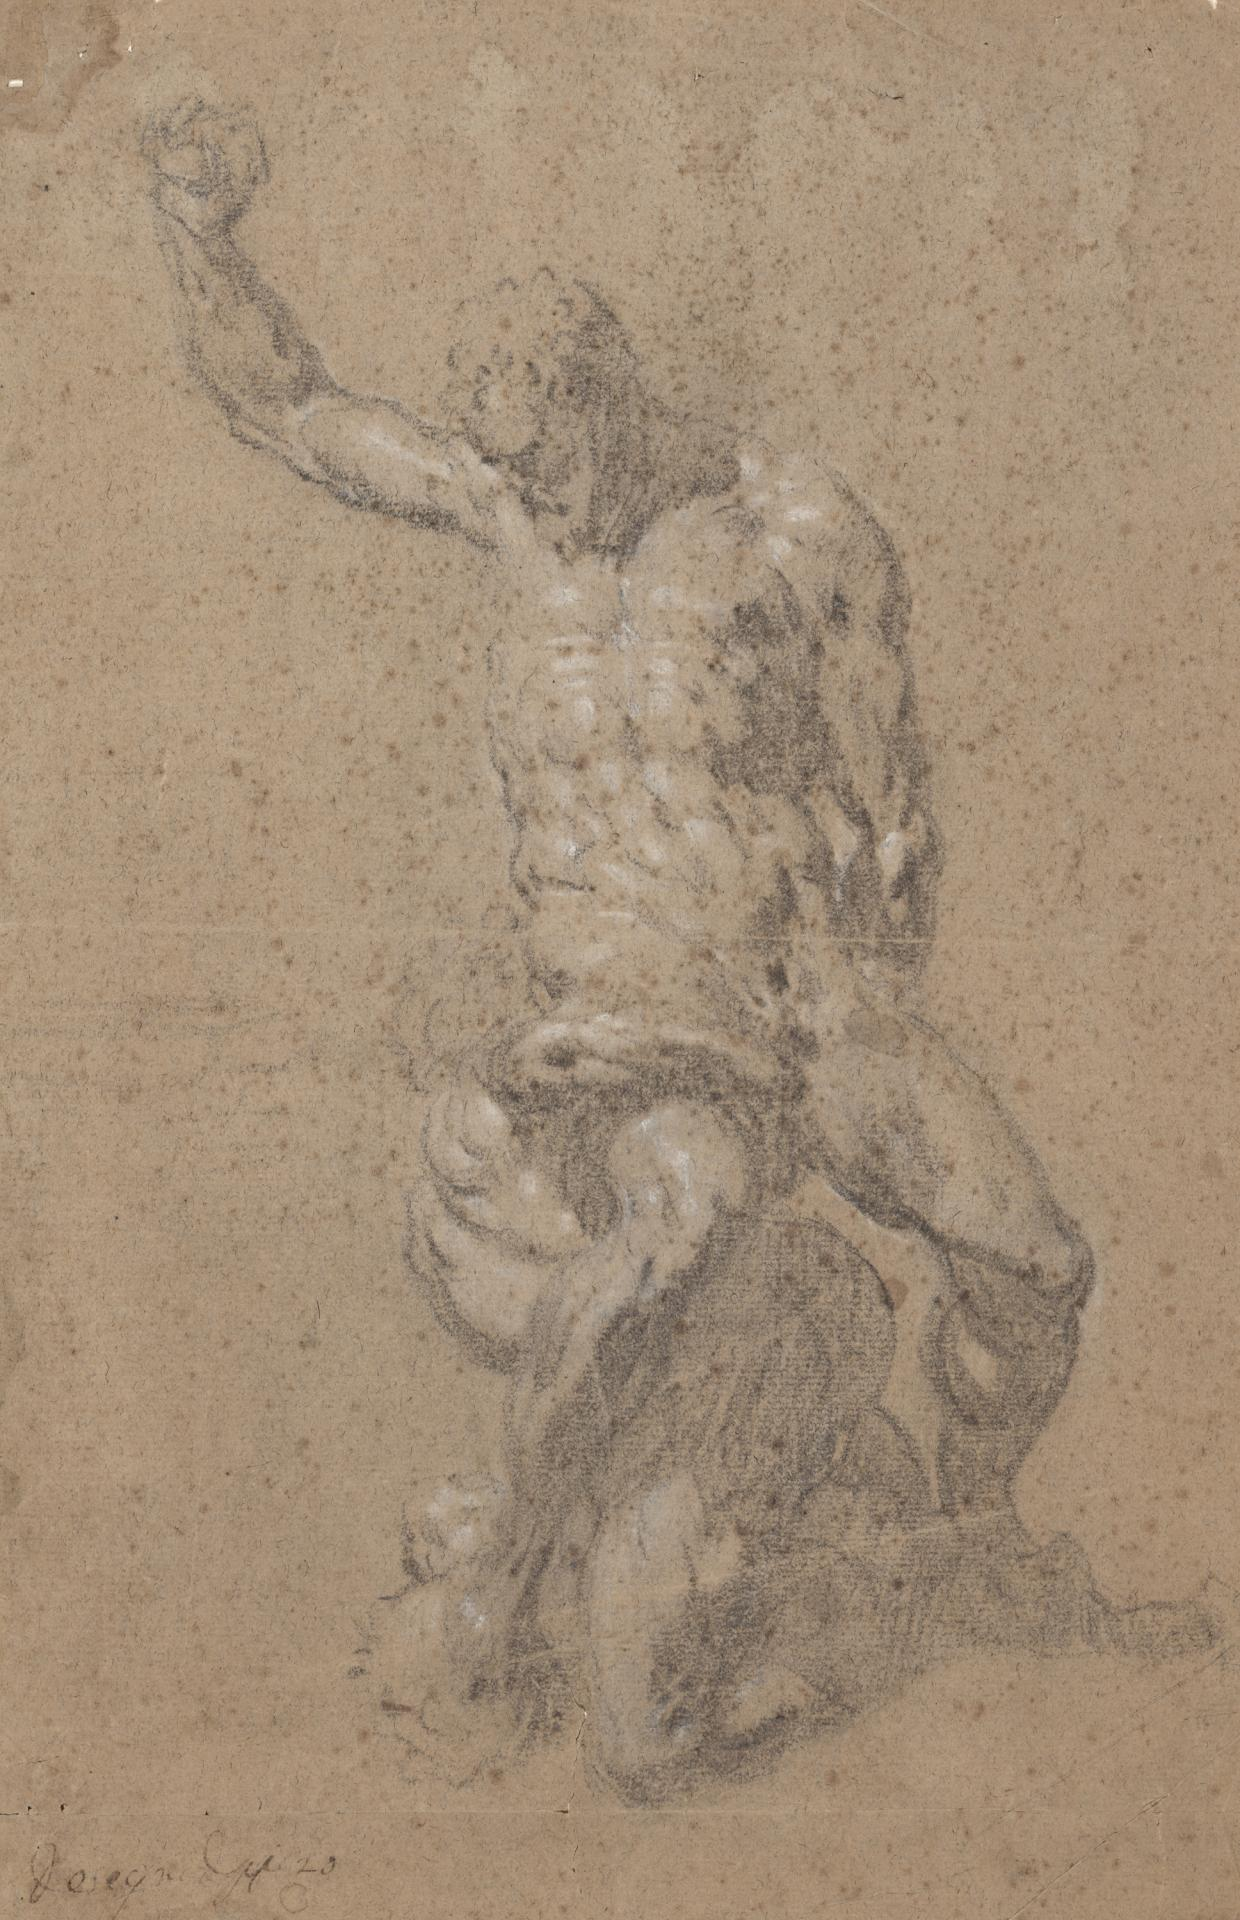 Drawing after a cast of Michelangelo's sculpture Samson and the Philistine